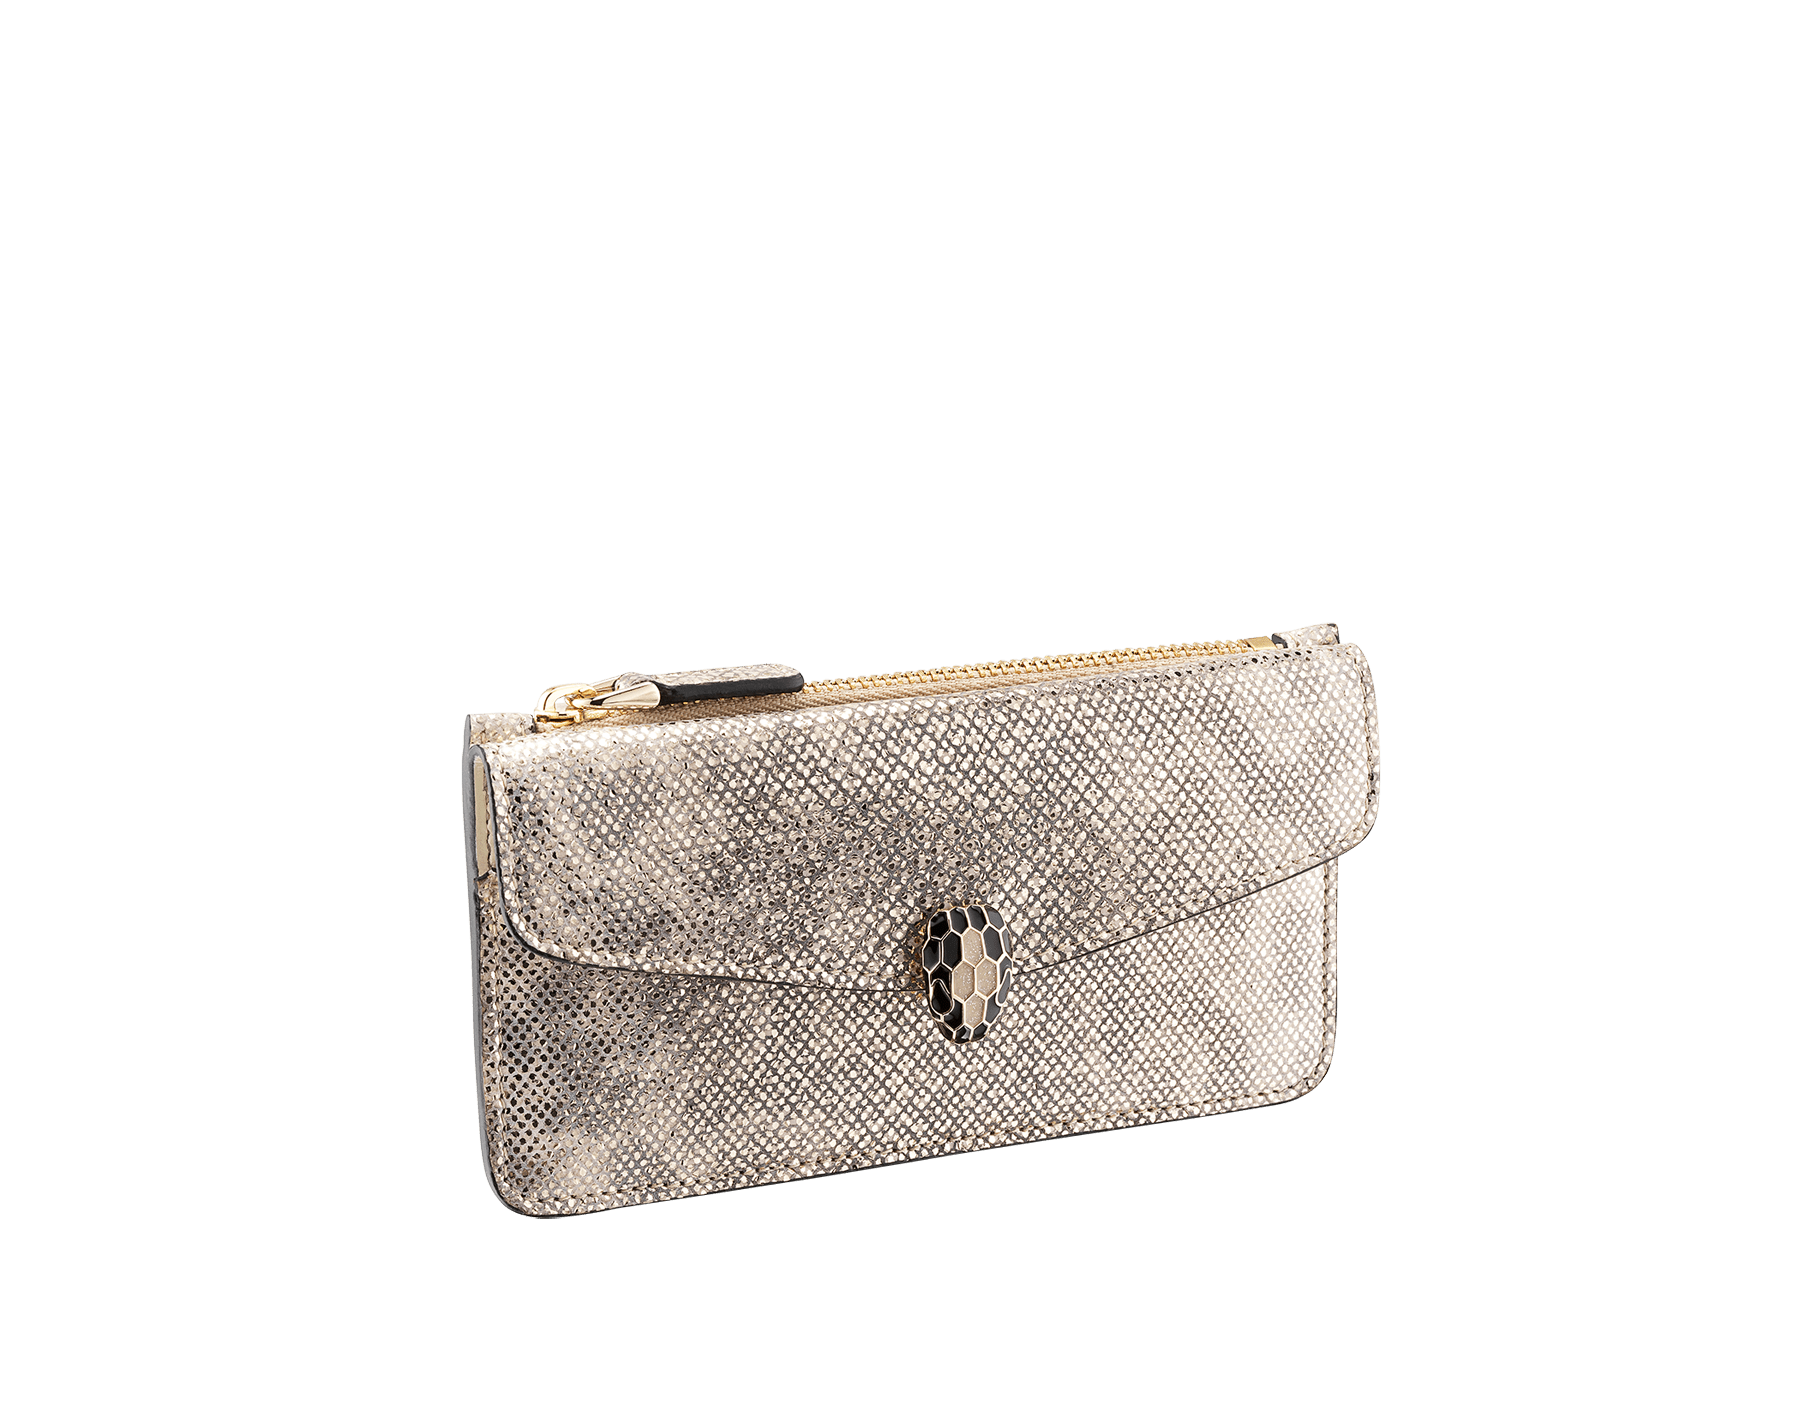 """Serpenti Forever"" card holder in Milky Opal beige metallic karung skin and Milky Opal beige calf leather. Light gold-plated brass iconic snakehead stud closure enameled in black and glittery Milky Opal beige, with black enamel eyes. SEA-CC-HOLDER-ZIP-MK image 1"